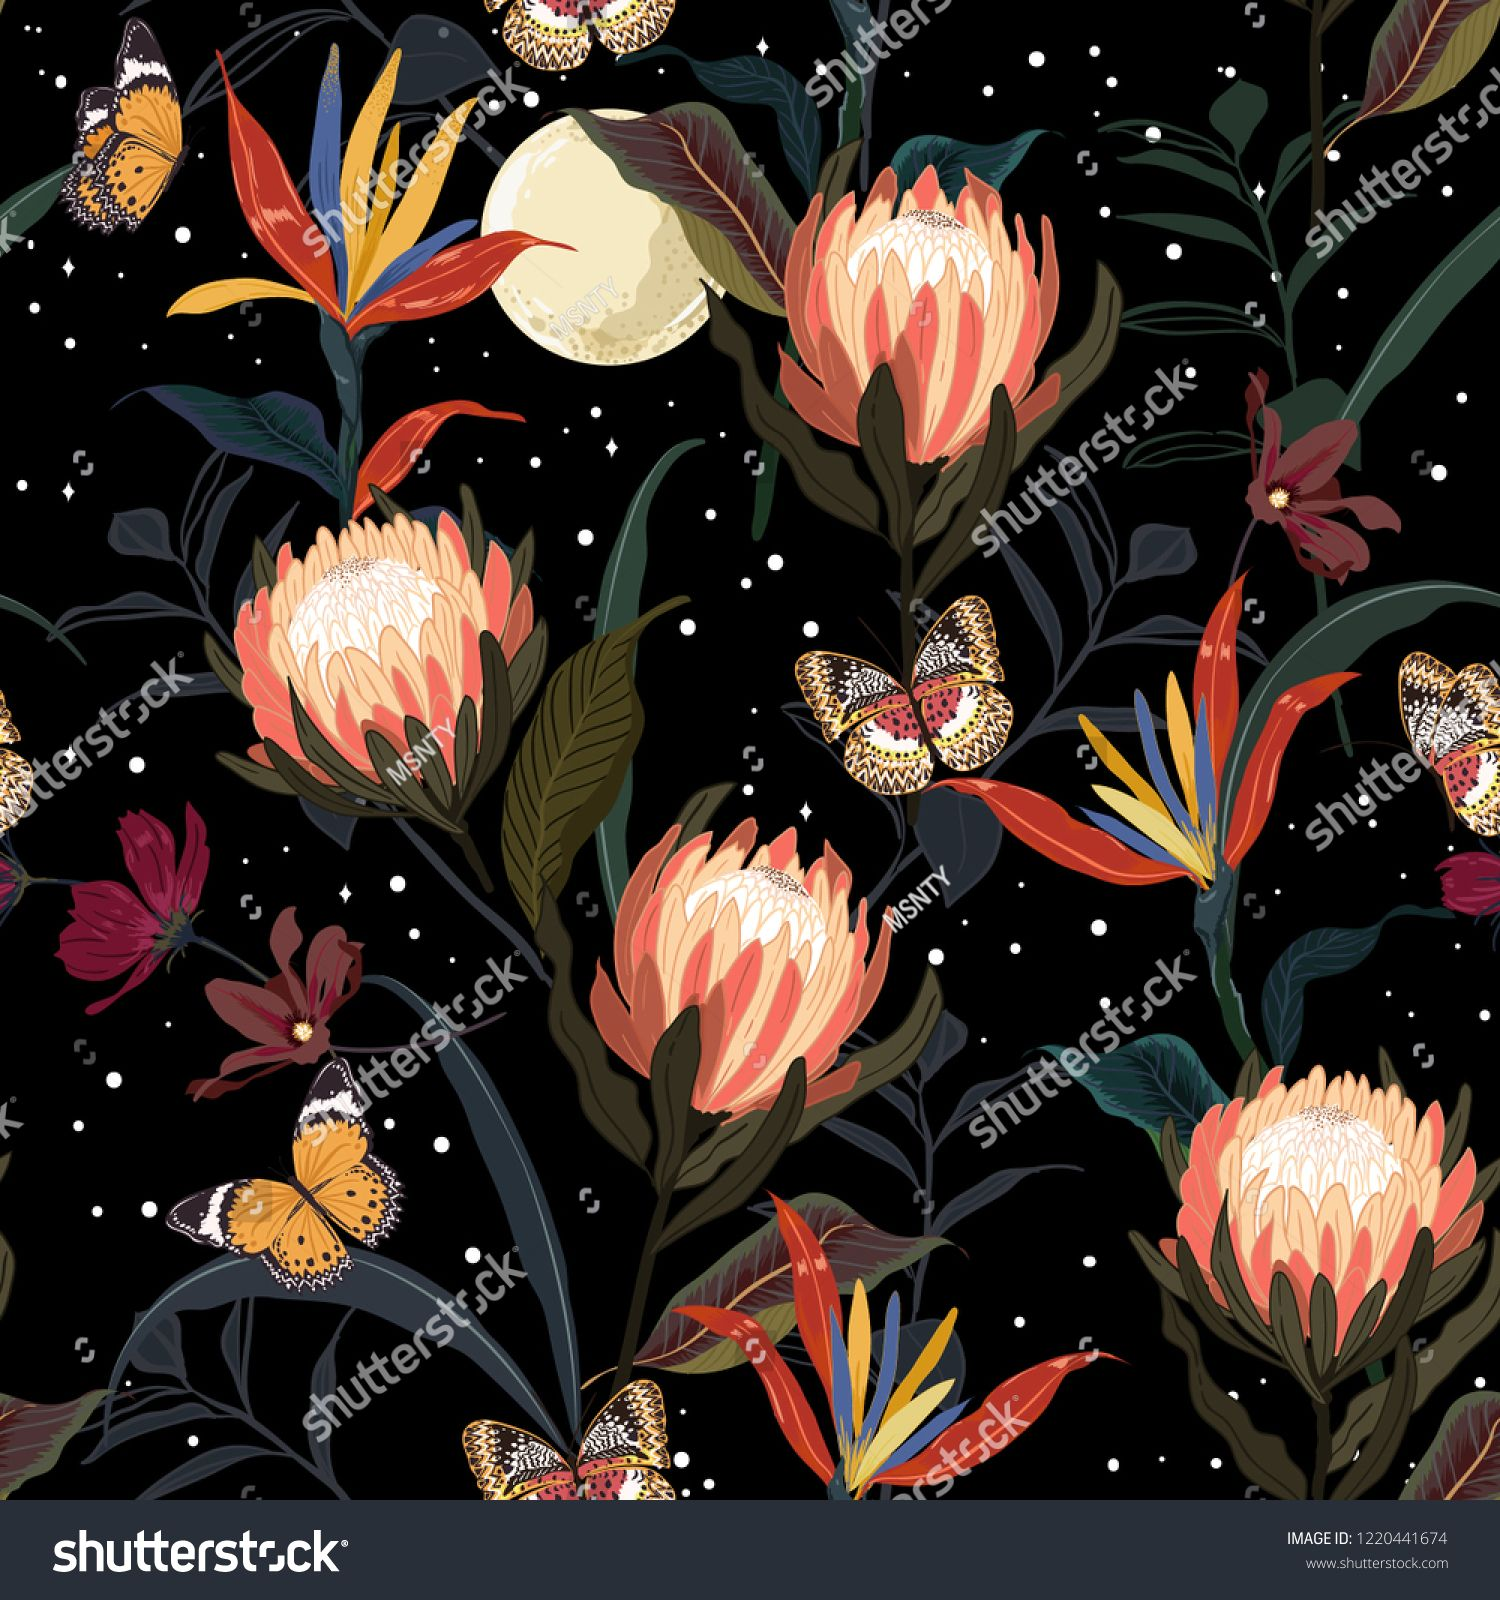 Beautiful Protea Flowers And Botanical Garden Night With Moon Shine And Stars Butterflies Seamless Patte Texture Art Seamless Patterns Seamless Pattern Vector